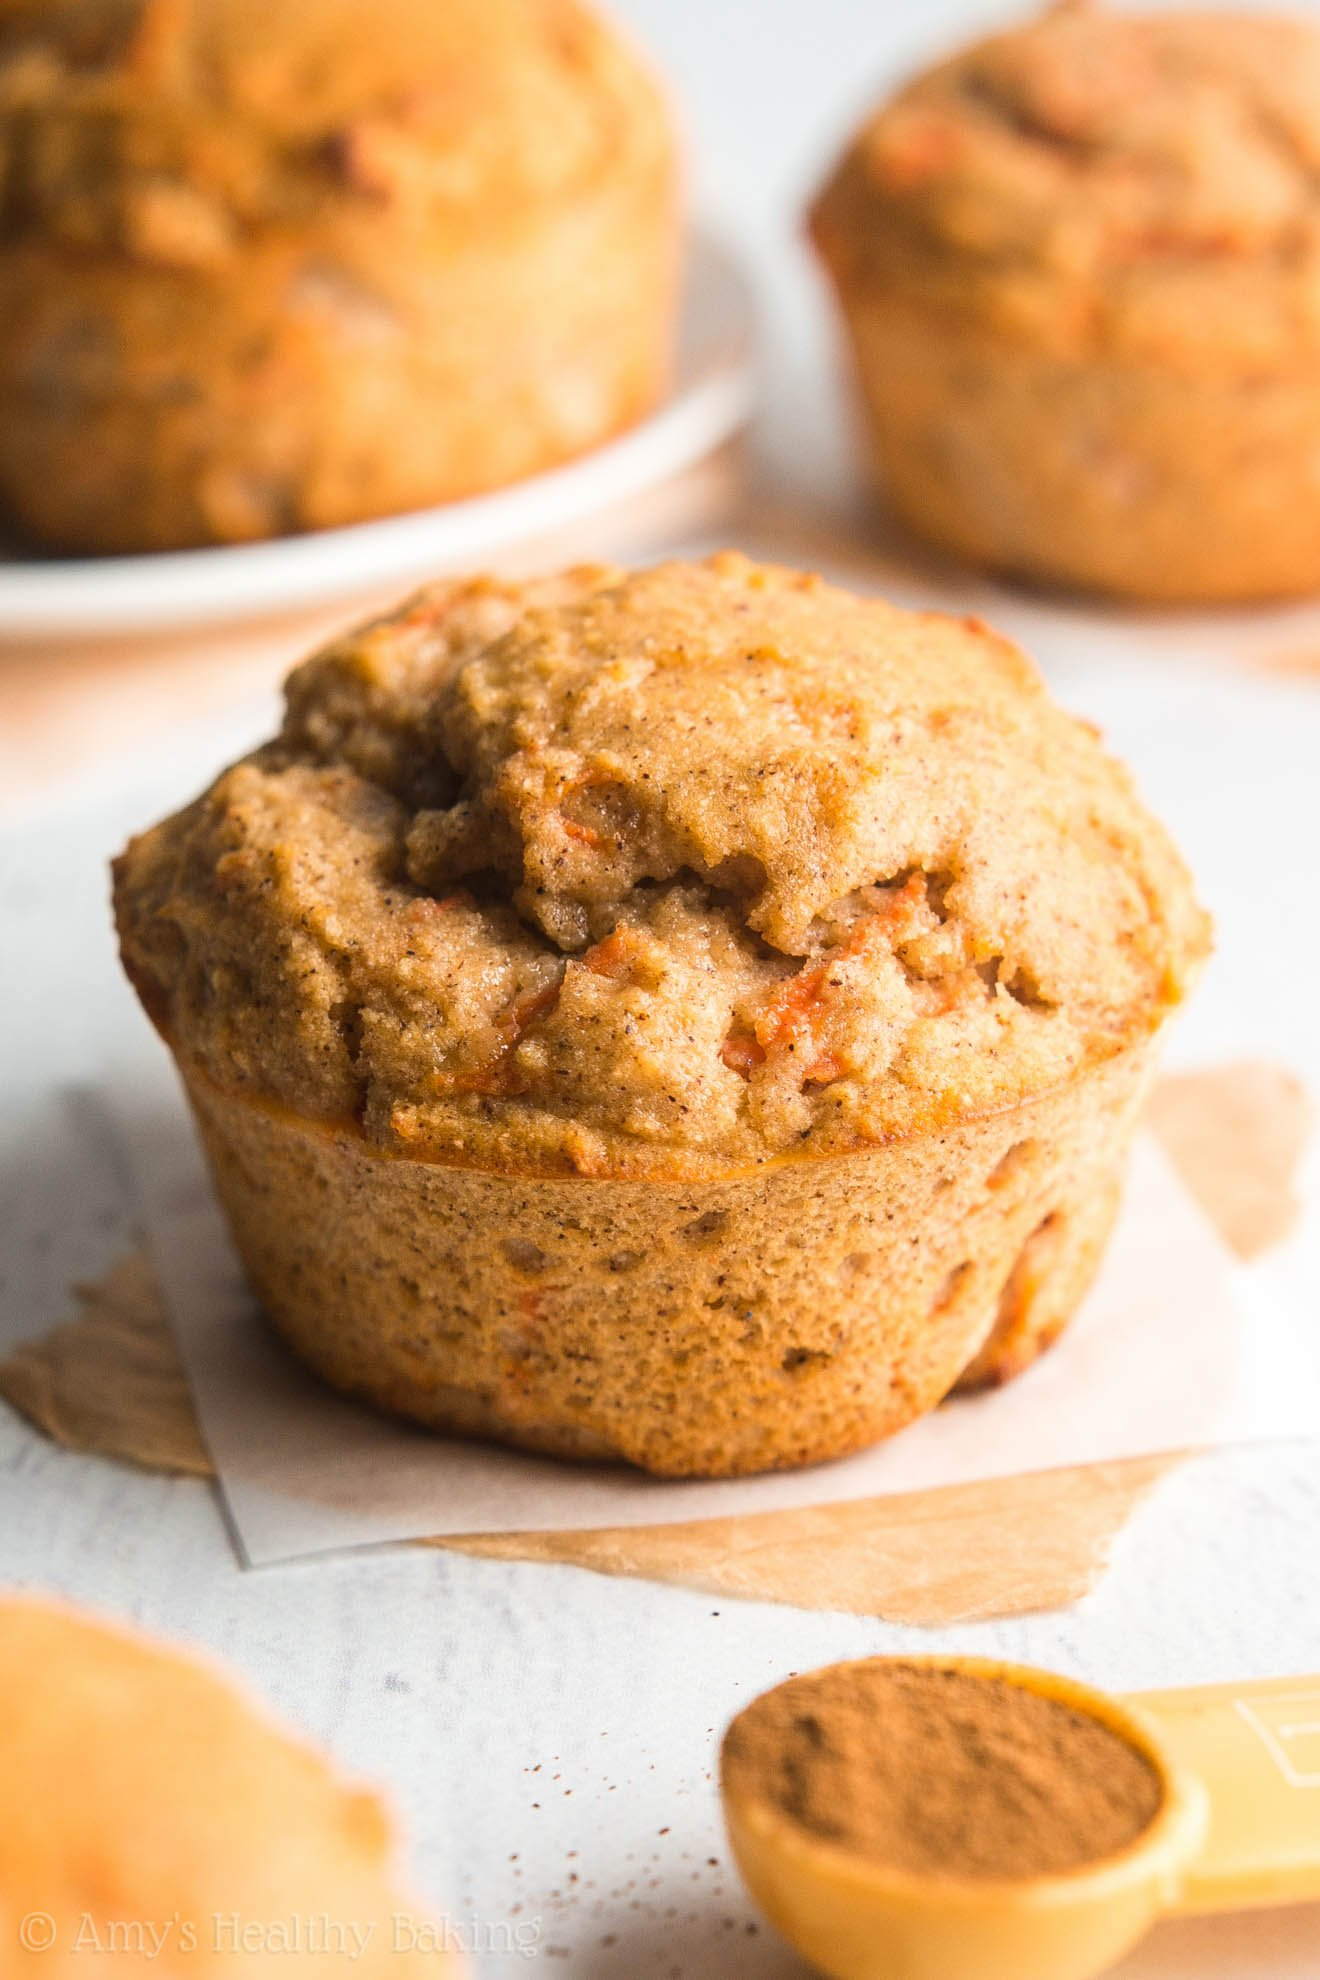 These healthy muffins taste just like carrot cake & have nearly 10g of protein! It's like eating dessert for breakfast without any guilt!